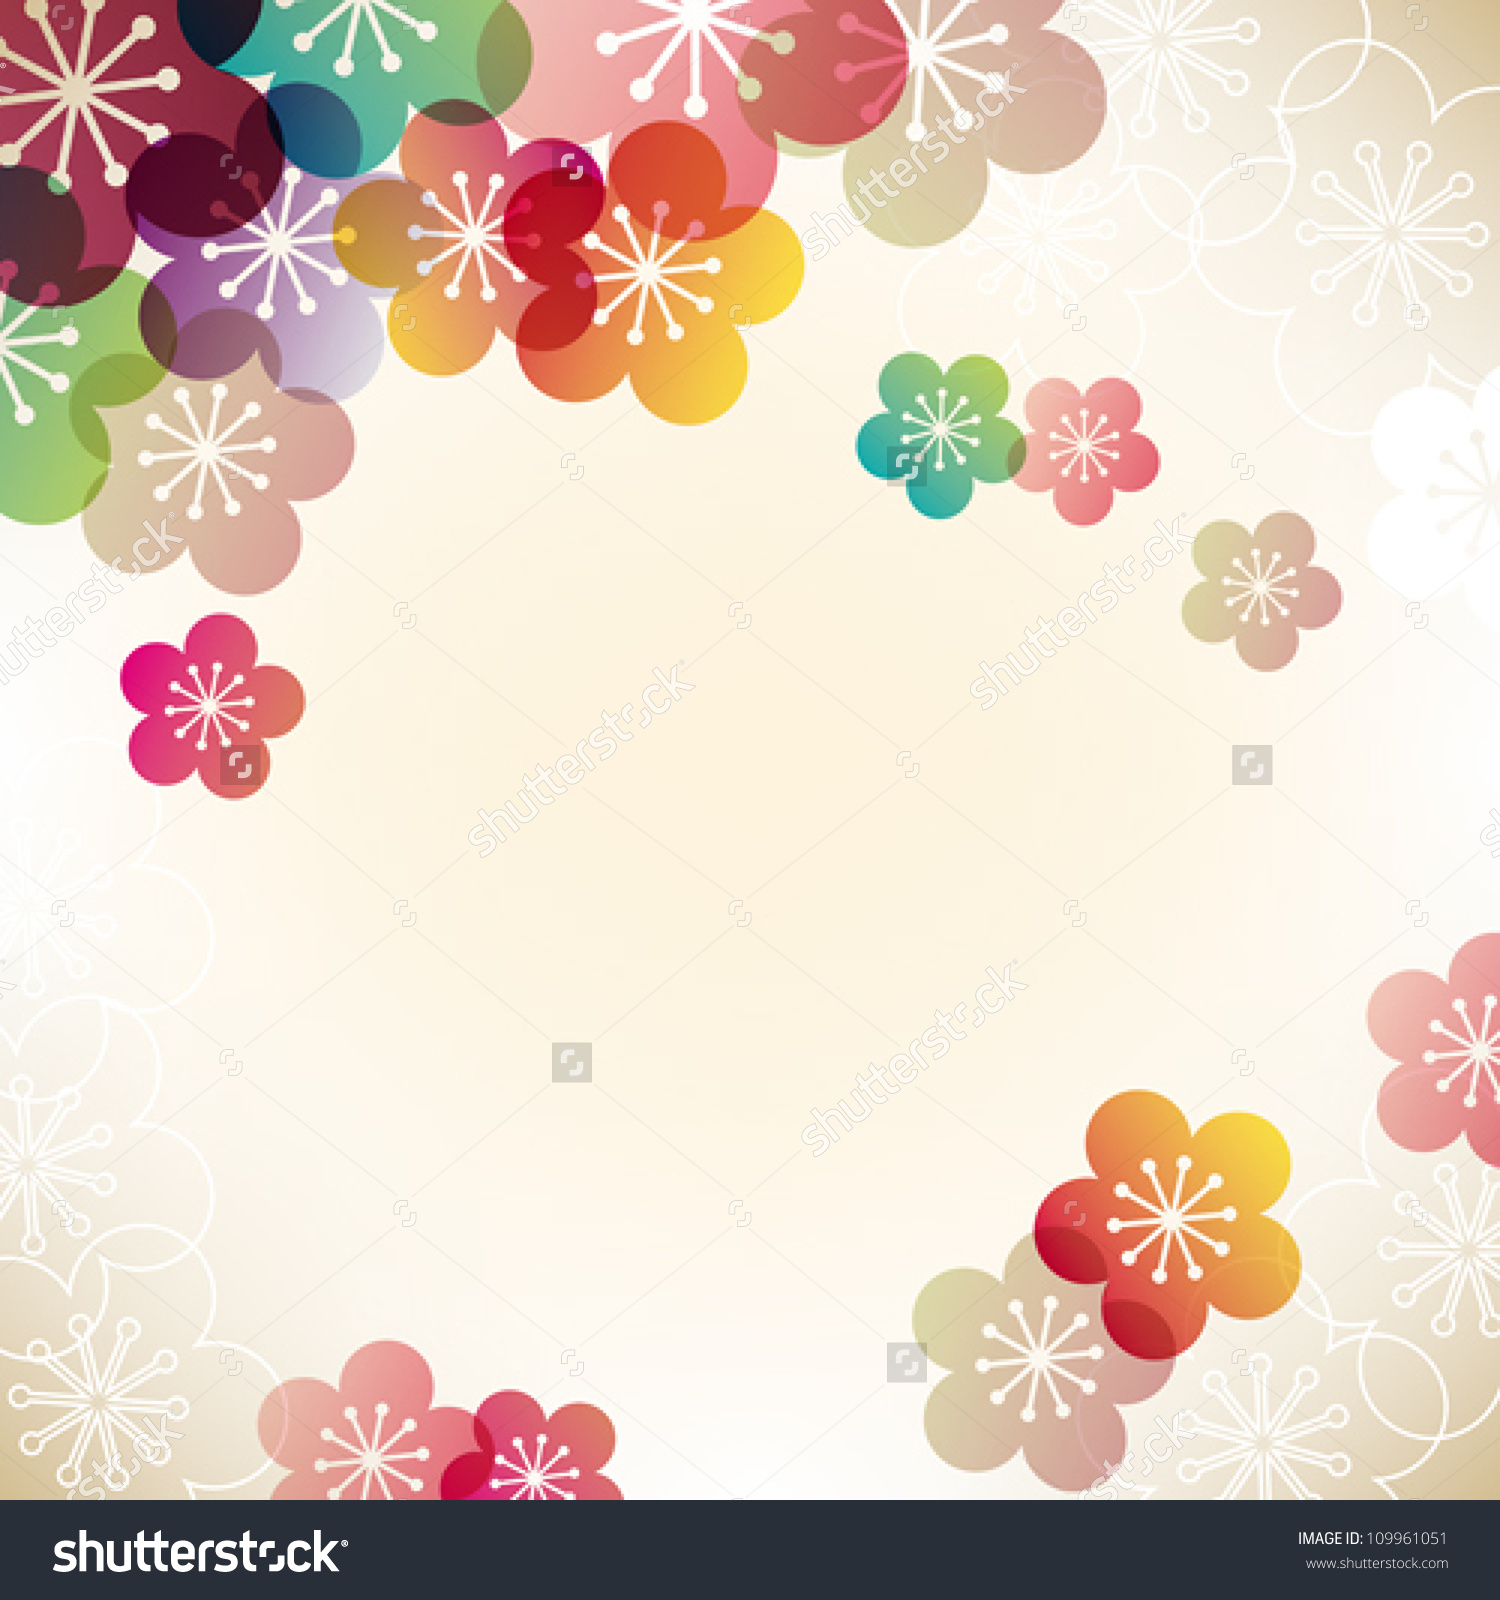 Japanese Apricot Background Stock Vector 109961051.